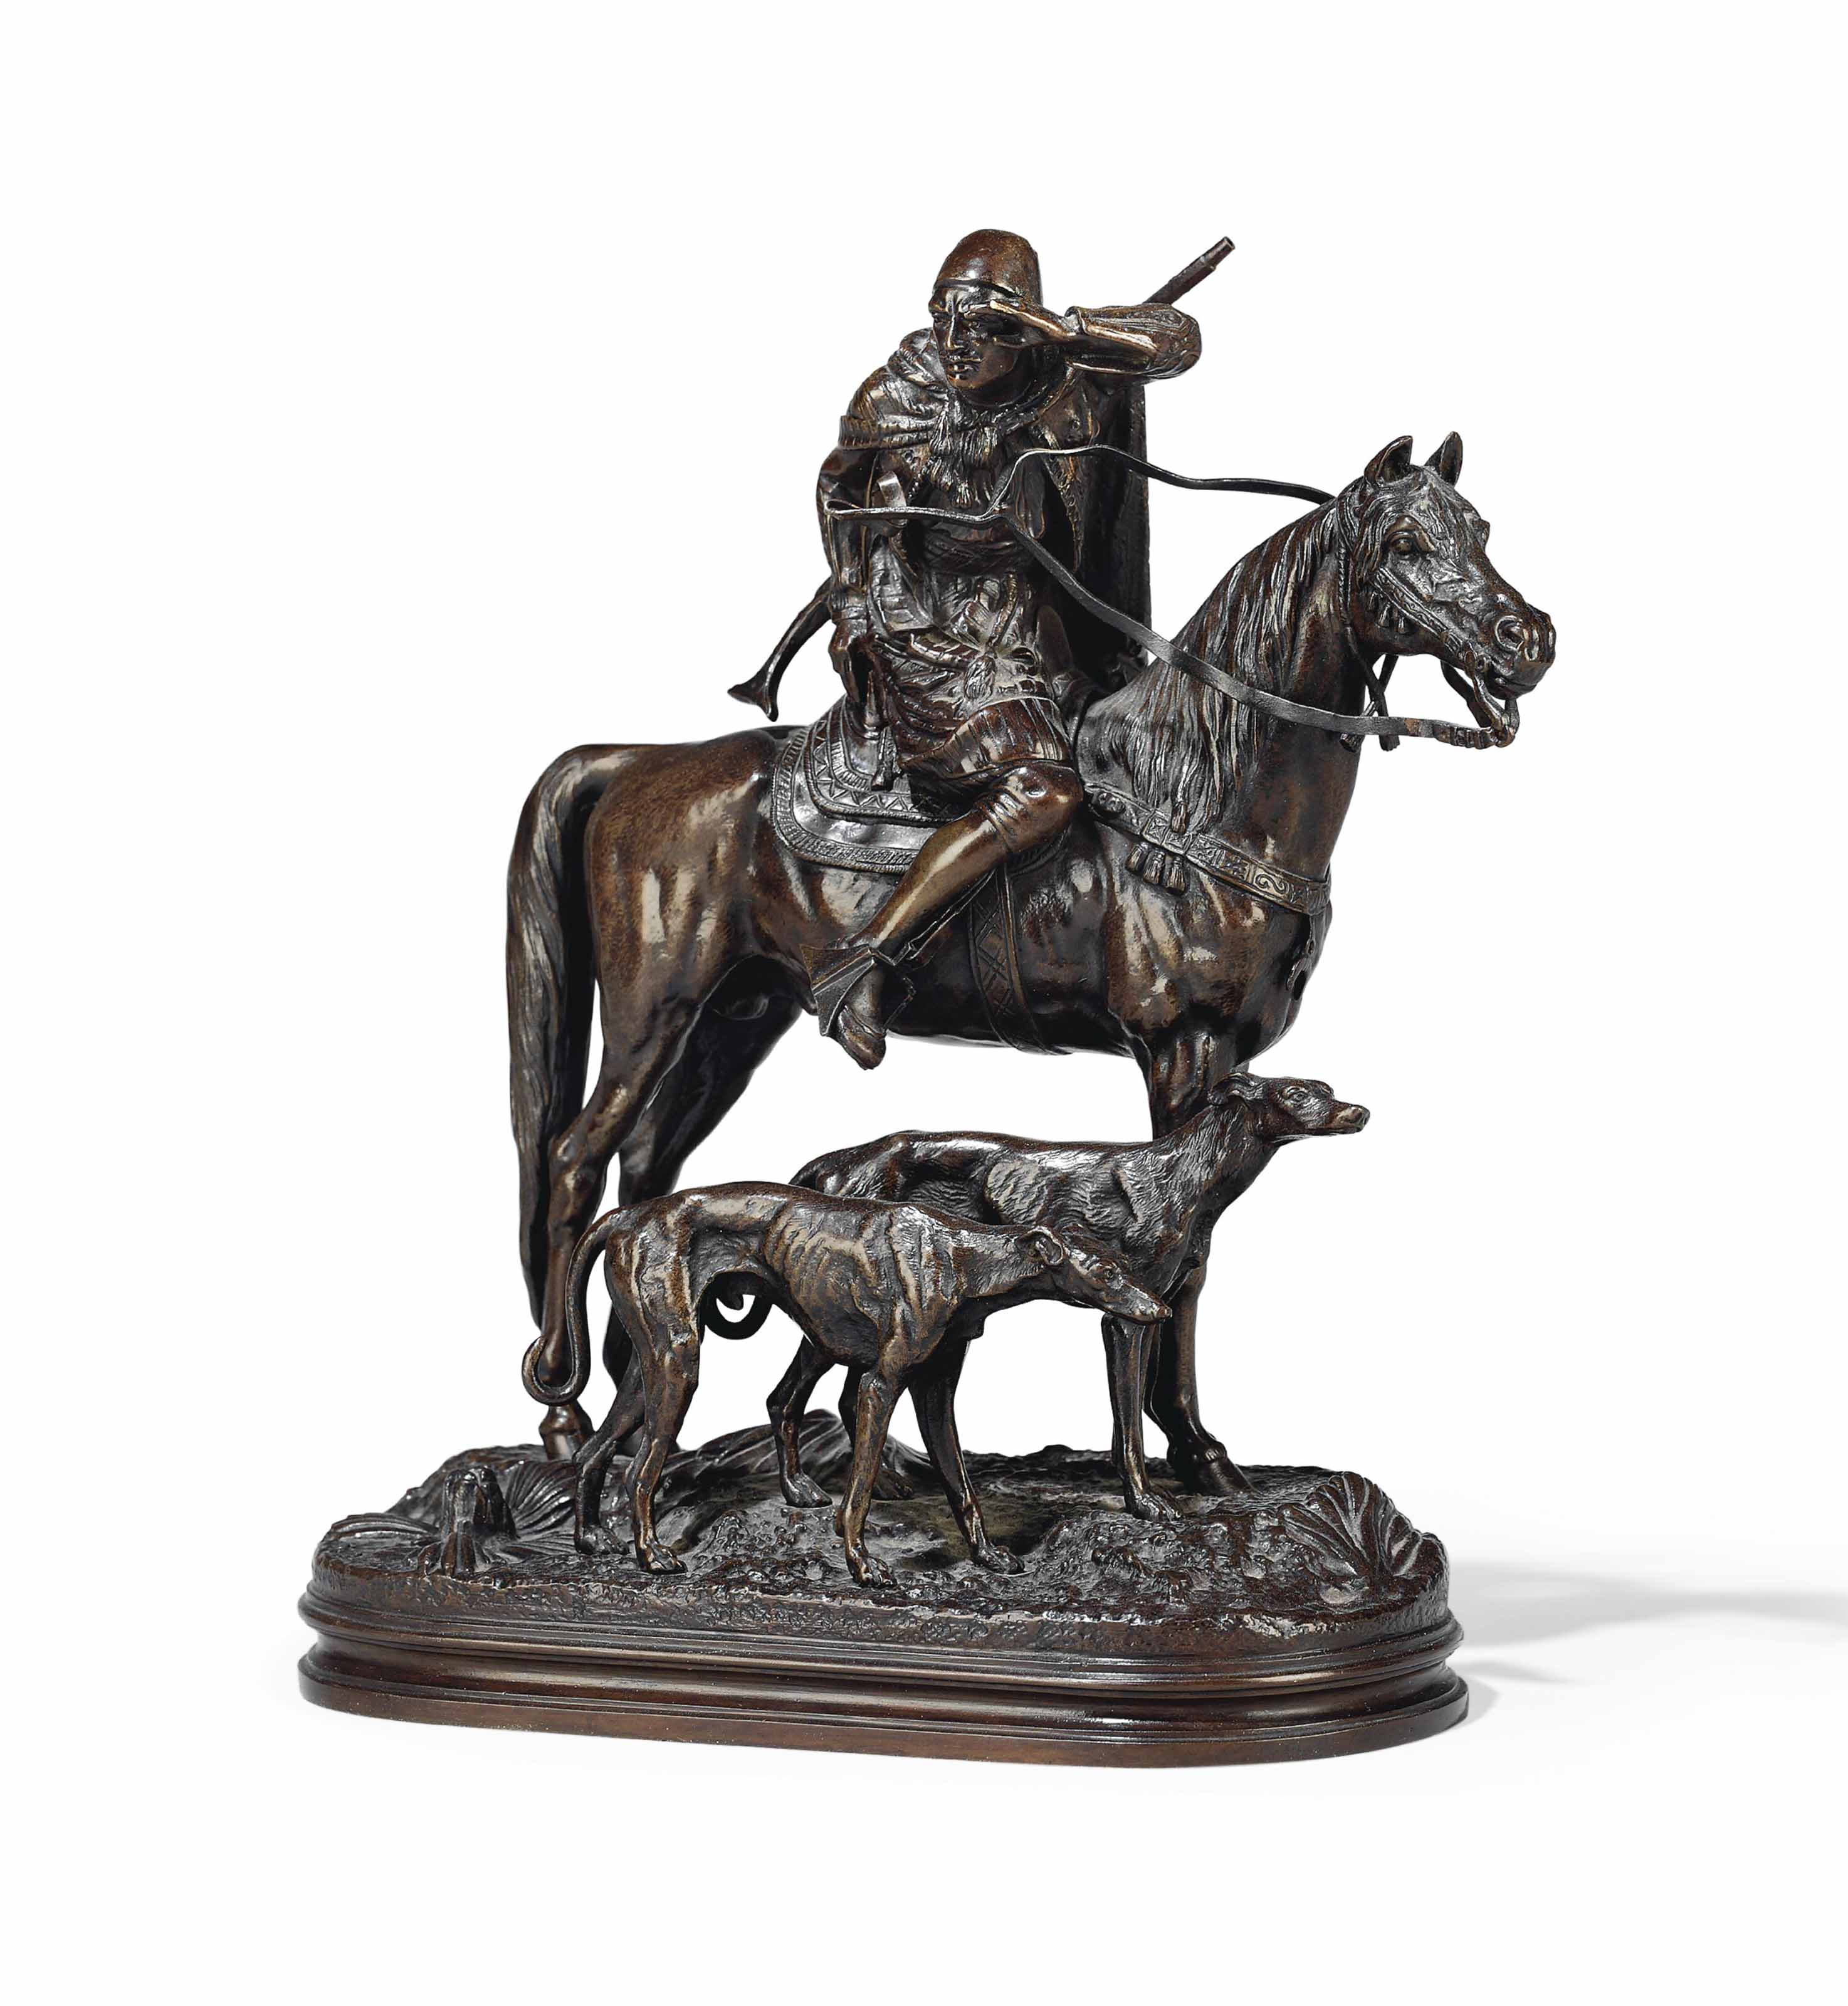 A FRENCH BRONZE GROUP ENTITLED 'THE HUNTER'